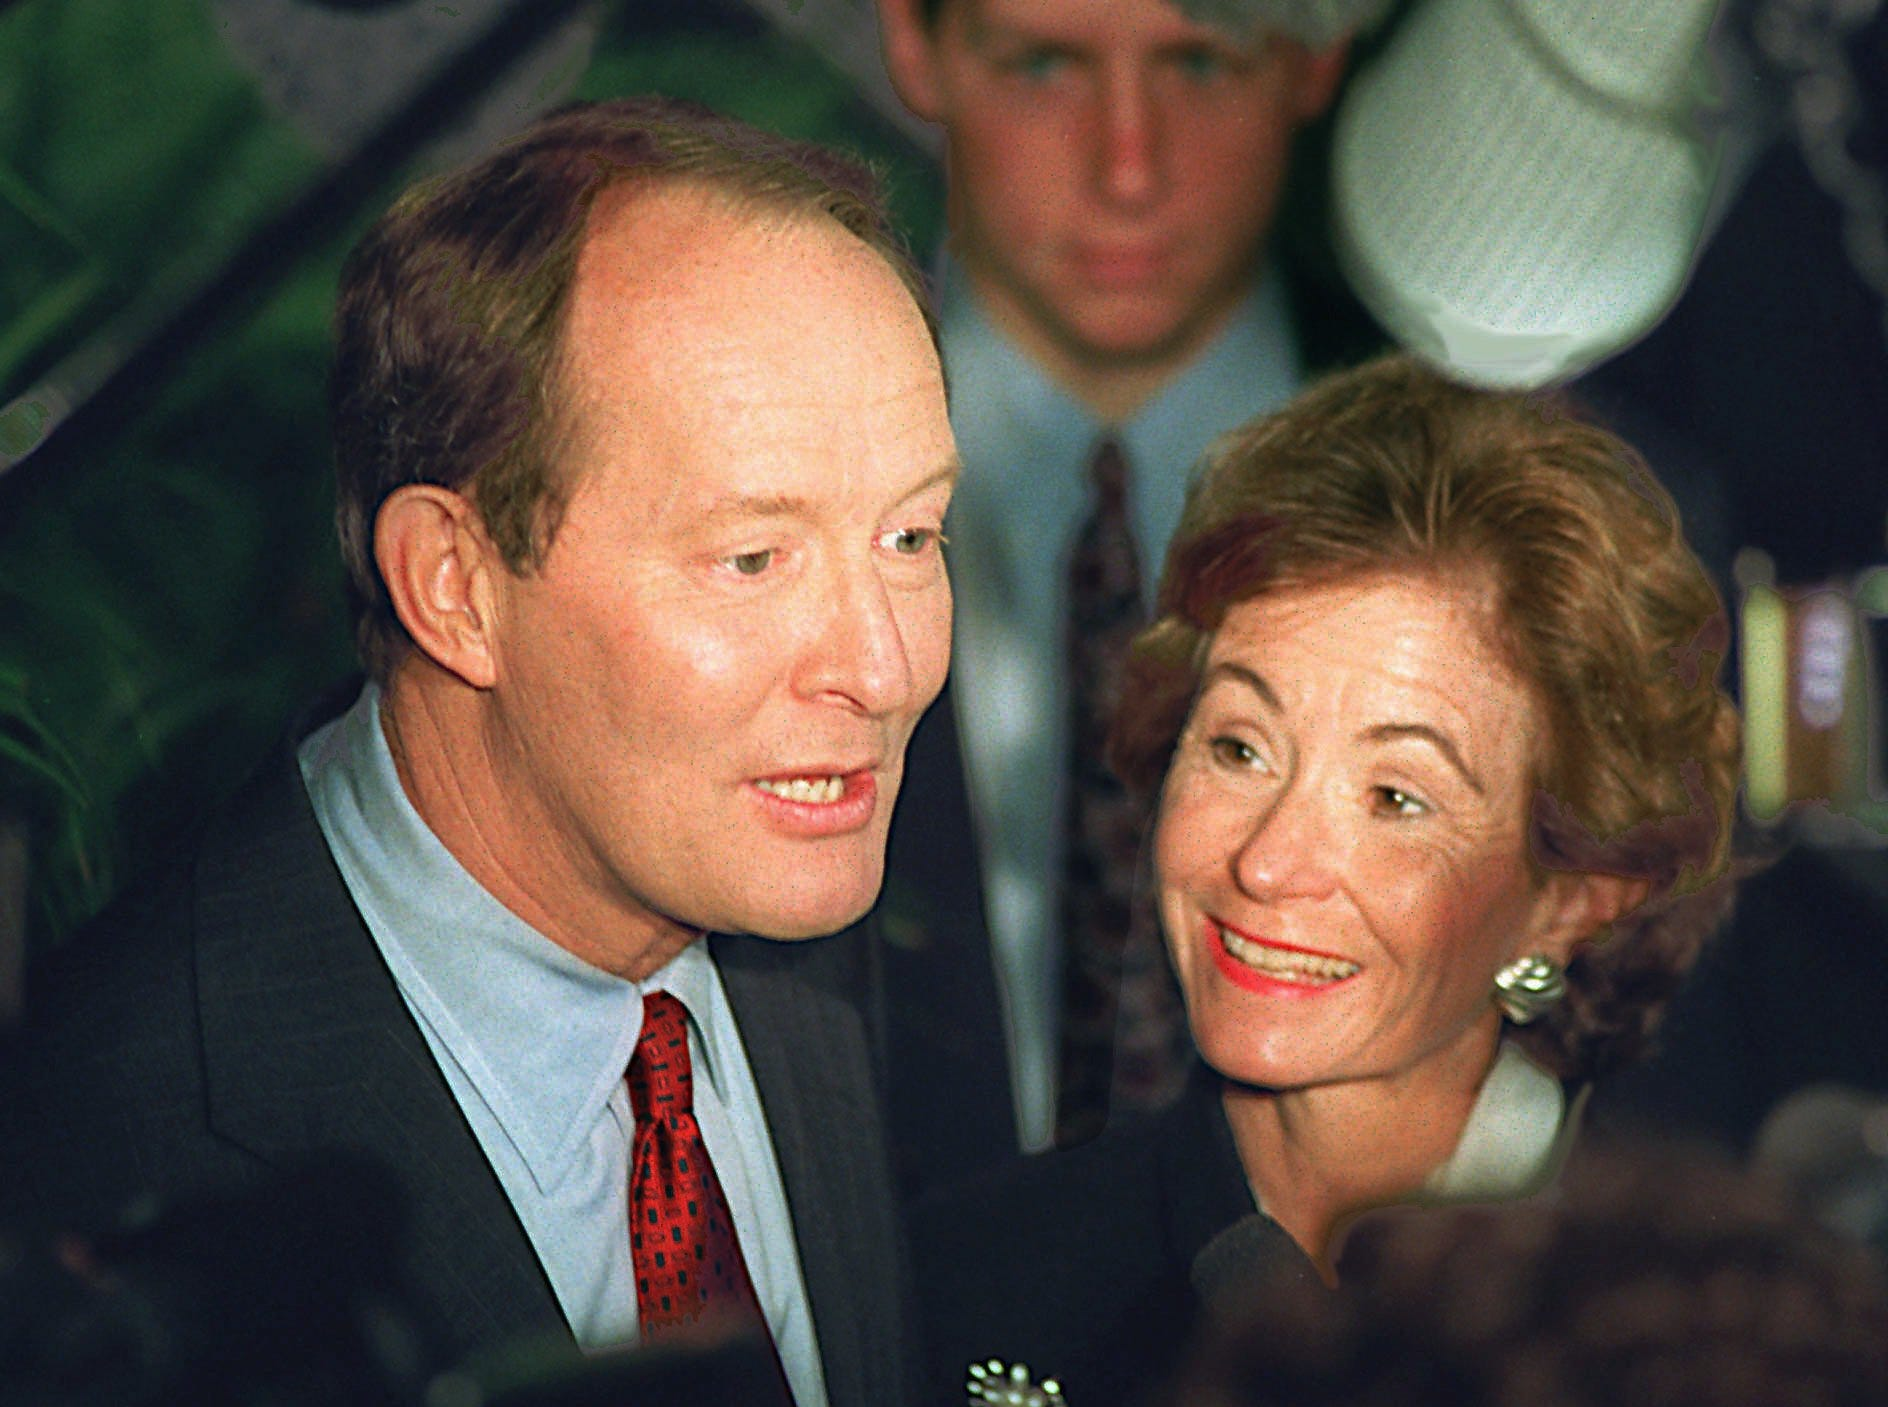 Facing the crush of the media for the final time in this campaign, presidential hopeful Lamar Alexander and his wife Honey make their way through the crowd after announcing his withdrawal from the race Wednesday, March 6, 1996 in Nashville, Tenn. In announcing his withdrawal, Alexander pledged his support to Republican front-runner Bob Dole.